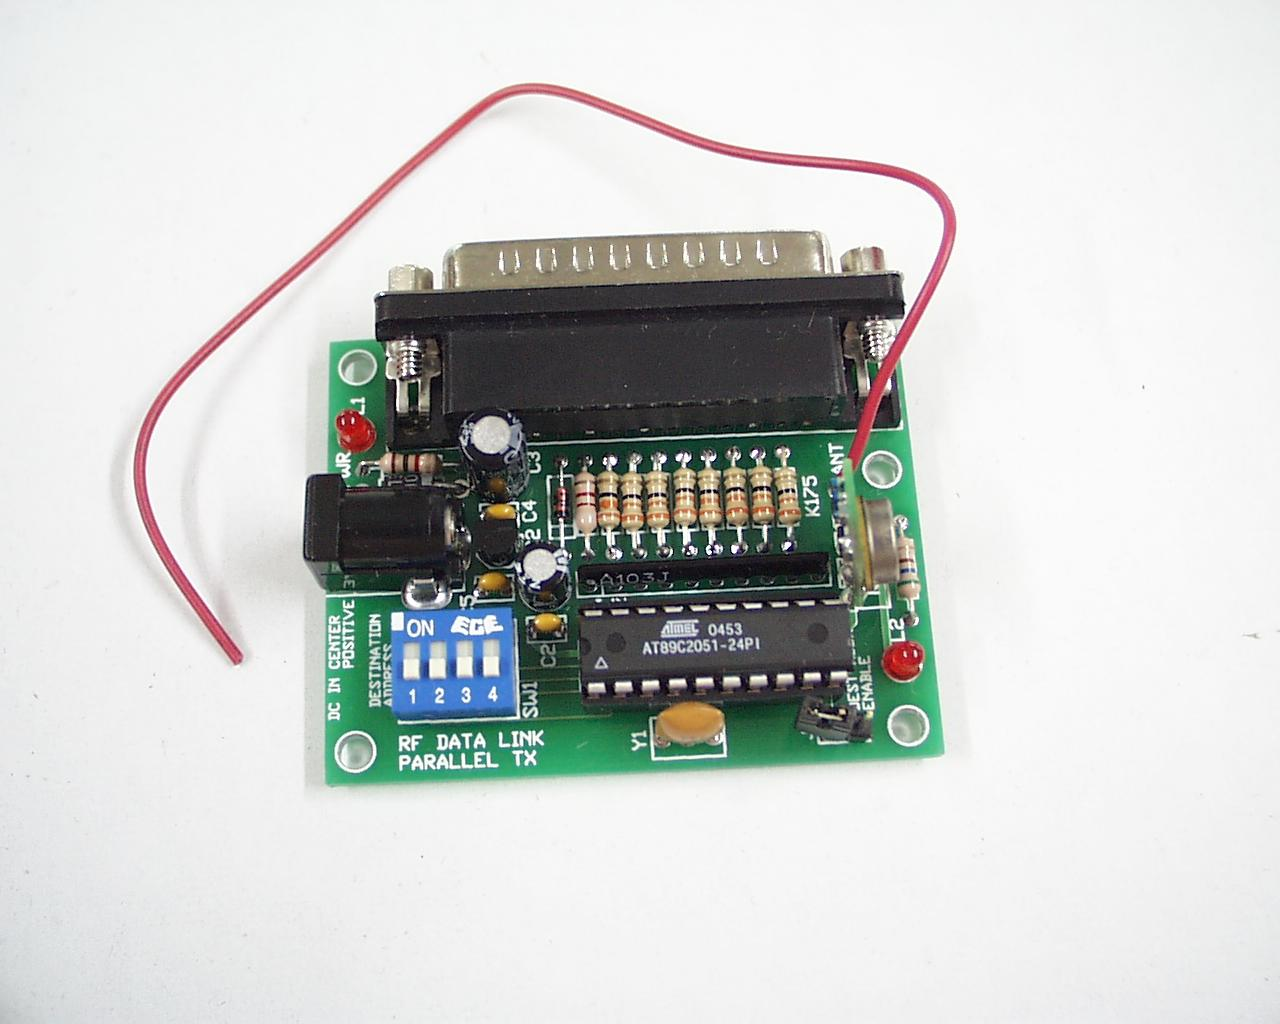 Robot Store Hk Mit Handyboard System Oopic Dr Kits Circuit Diagram Of Zigbee Transmitter The Kit Monitors 8 Digital Inputs For Change If Is Detected On Any Input State All Transmitted An Optional Destination Address